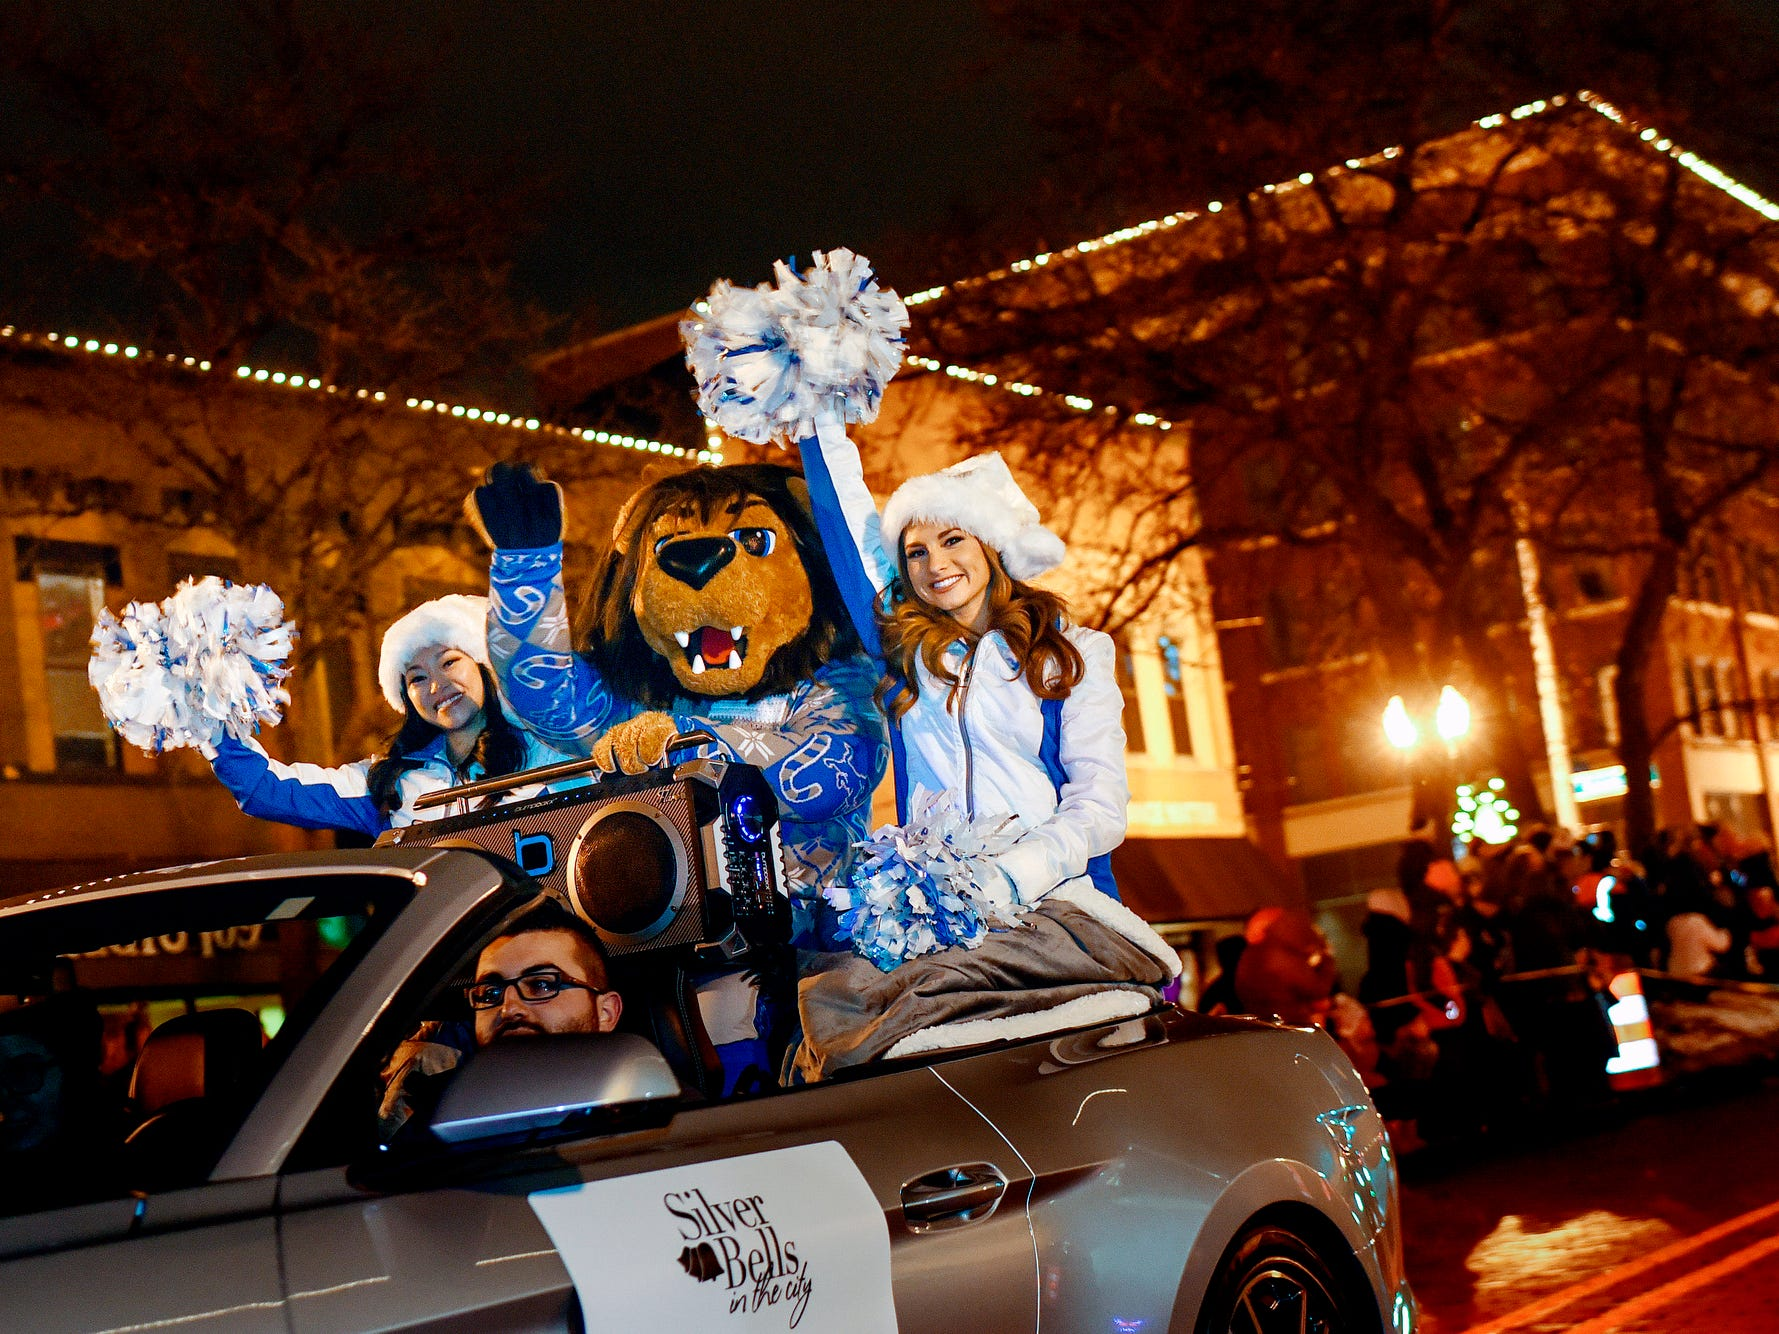 Detroit Lions mascot Roary and two cheerleaders wave to the crowd as they ride in the Silver Bells in the City Electric Light Parade on Friday, Nov. 16, 2018, in downtown Lansing. They were selected as Grand Marshals of the parade.